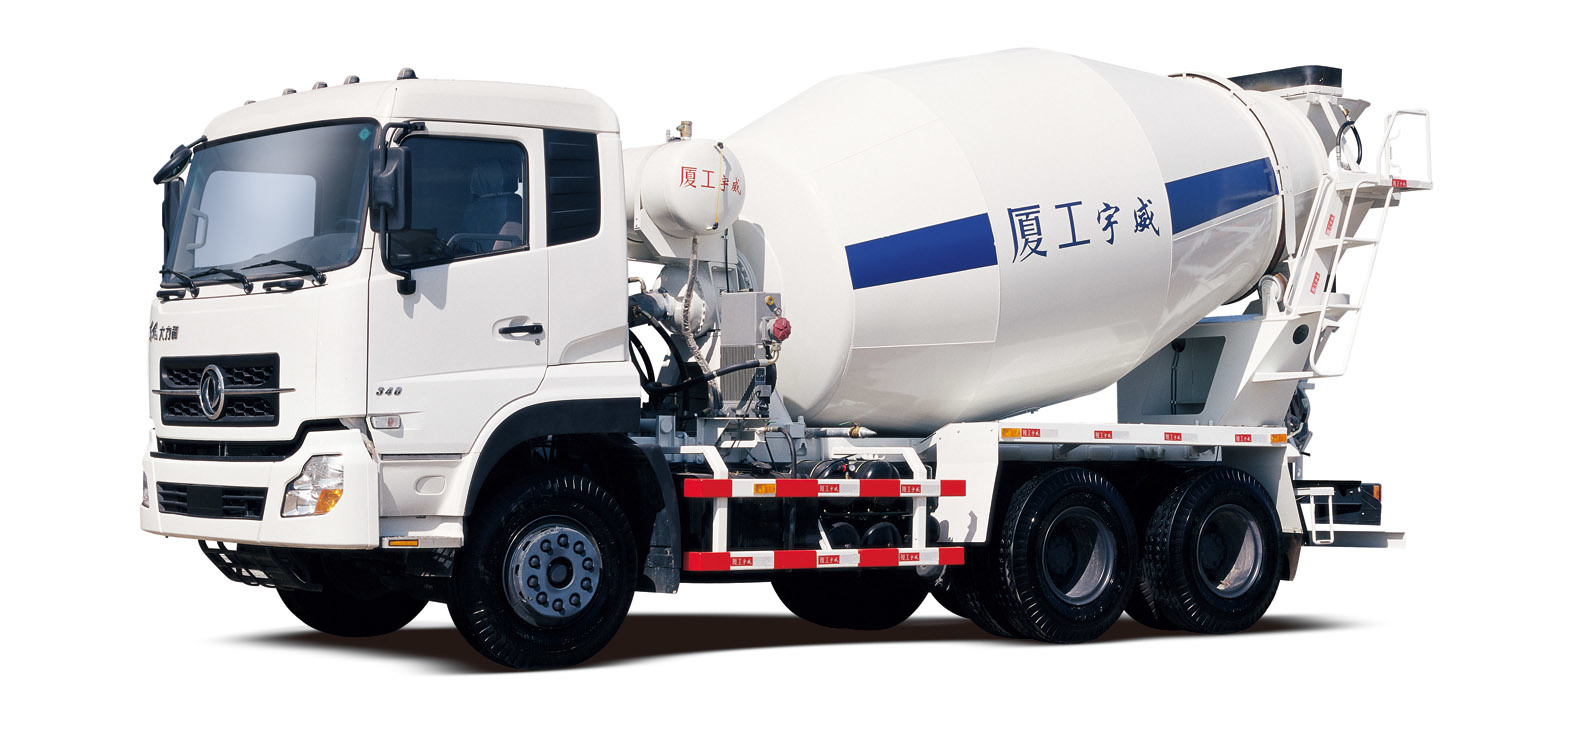 the concrete mixer A mobile mixer can be used for different projects and a solution to many problems the most important aspect that a mobile mixer can bring is the flexibility of always having fresh concrete on-site by the time you need it.